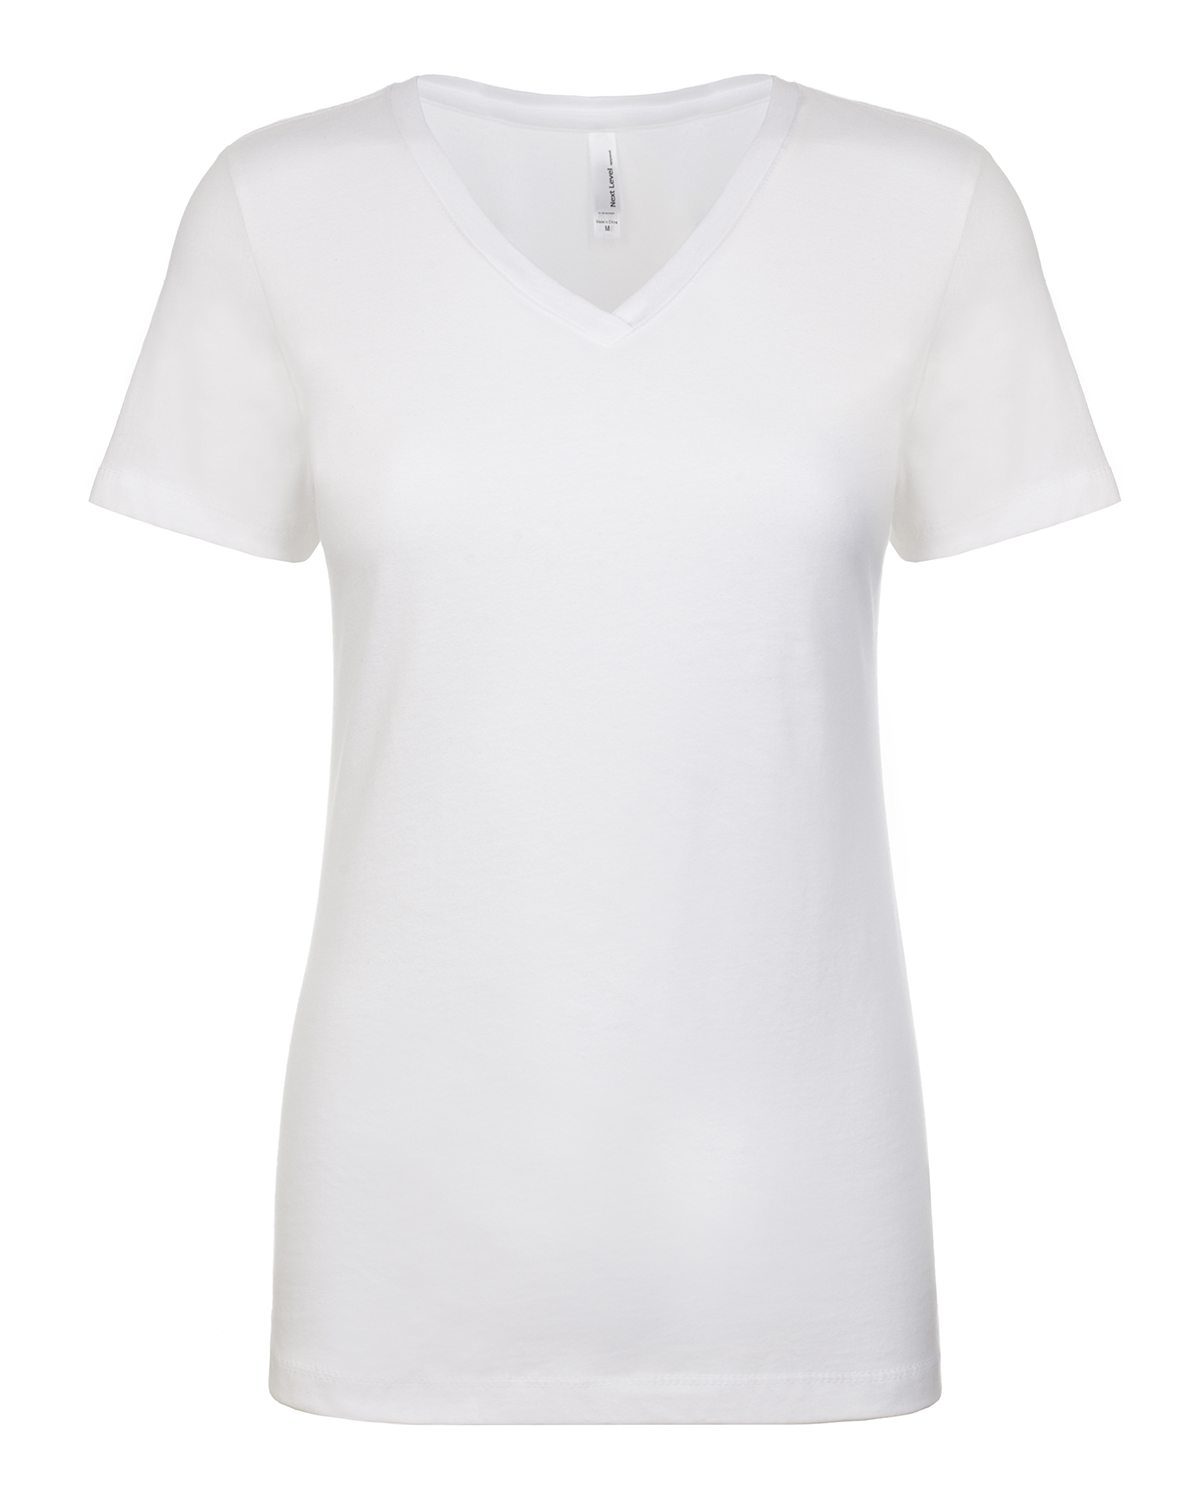 Next Level Apparel N1540 - Ladies' Ideal V-Neck Tee